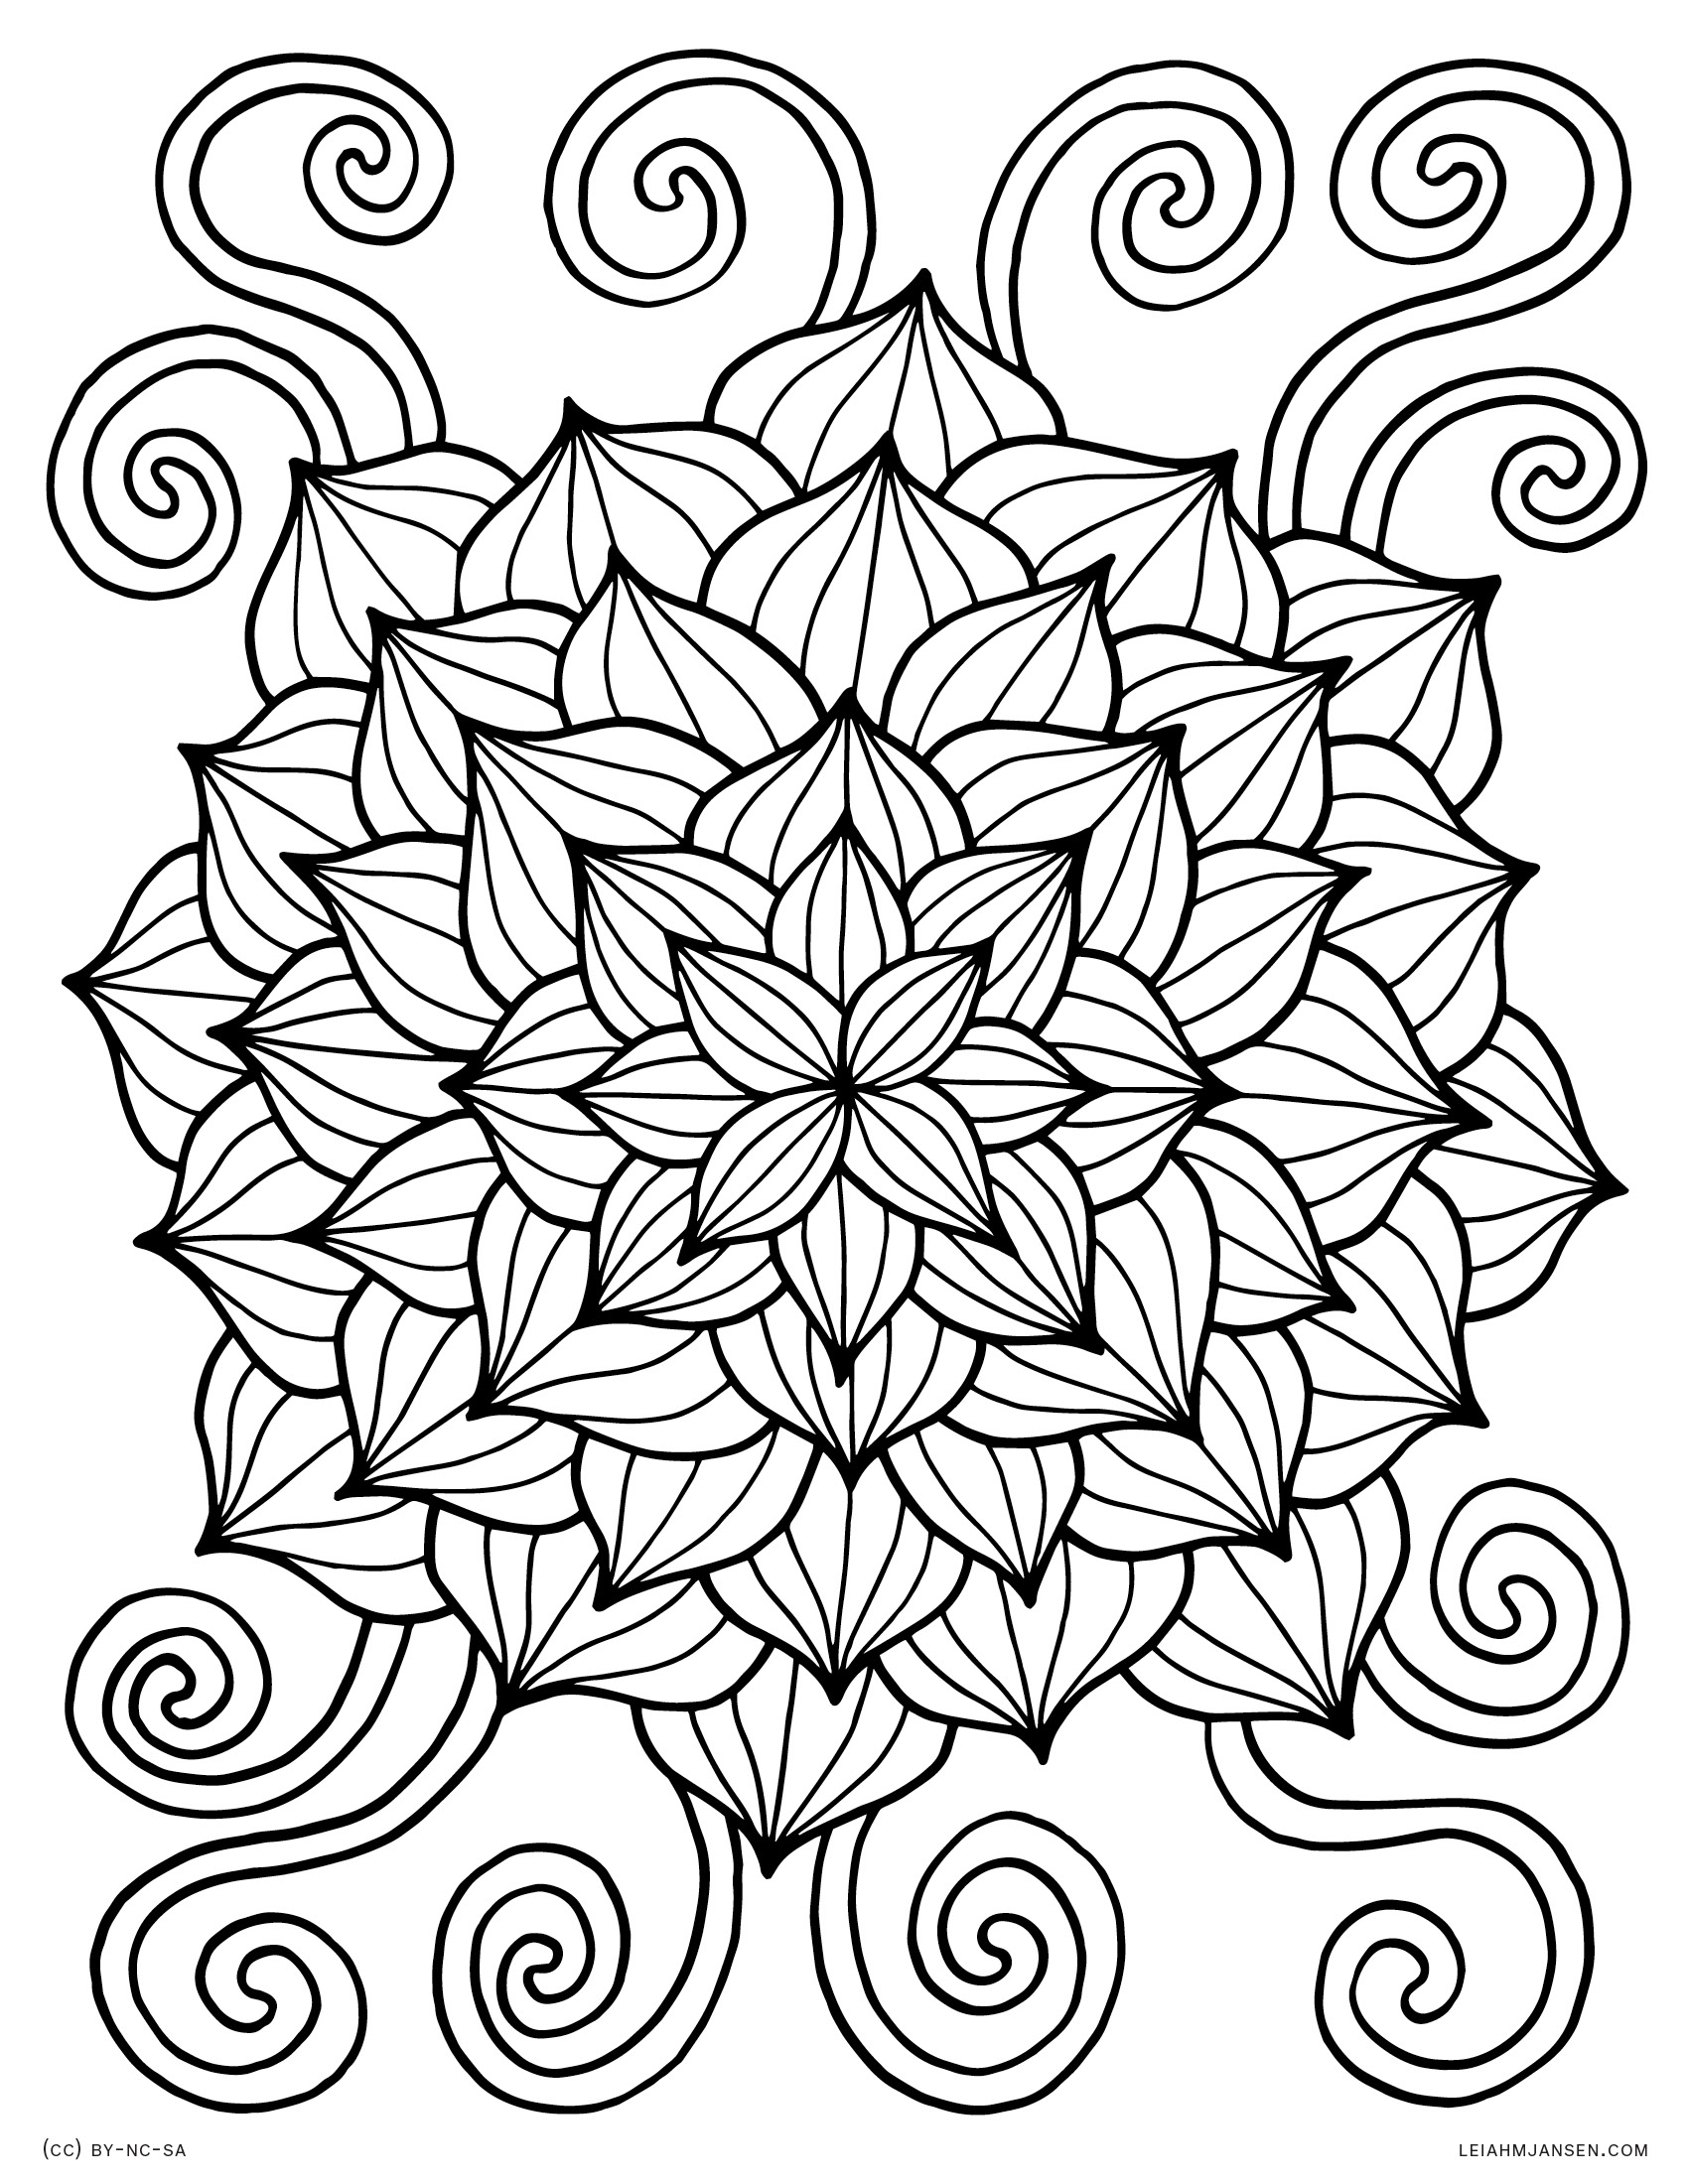 Lotus burst abstract linework flower free printable coloring page for adults and kids